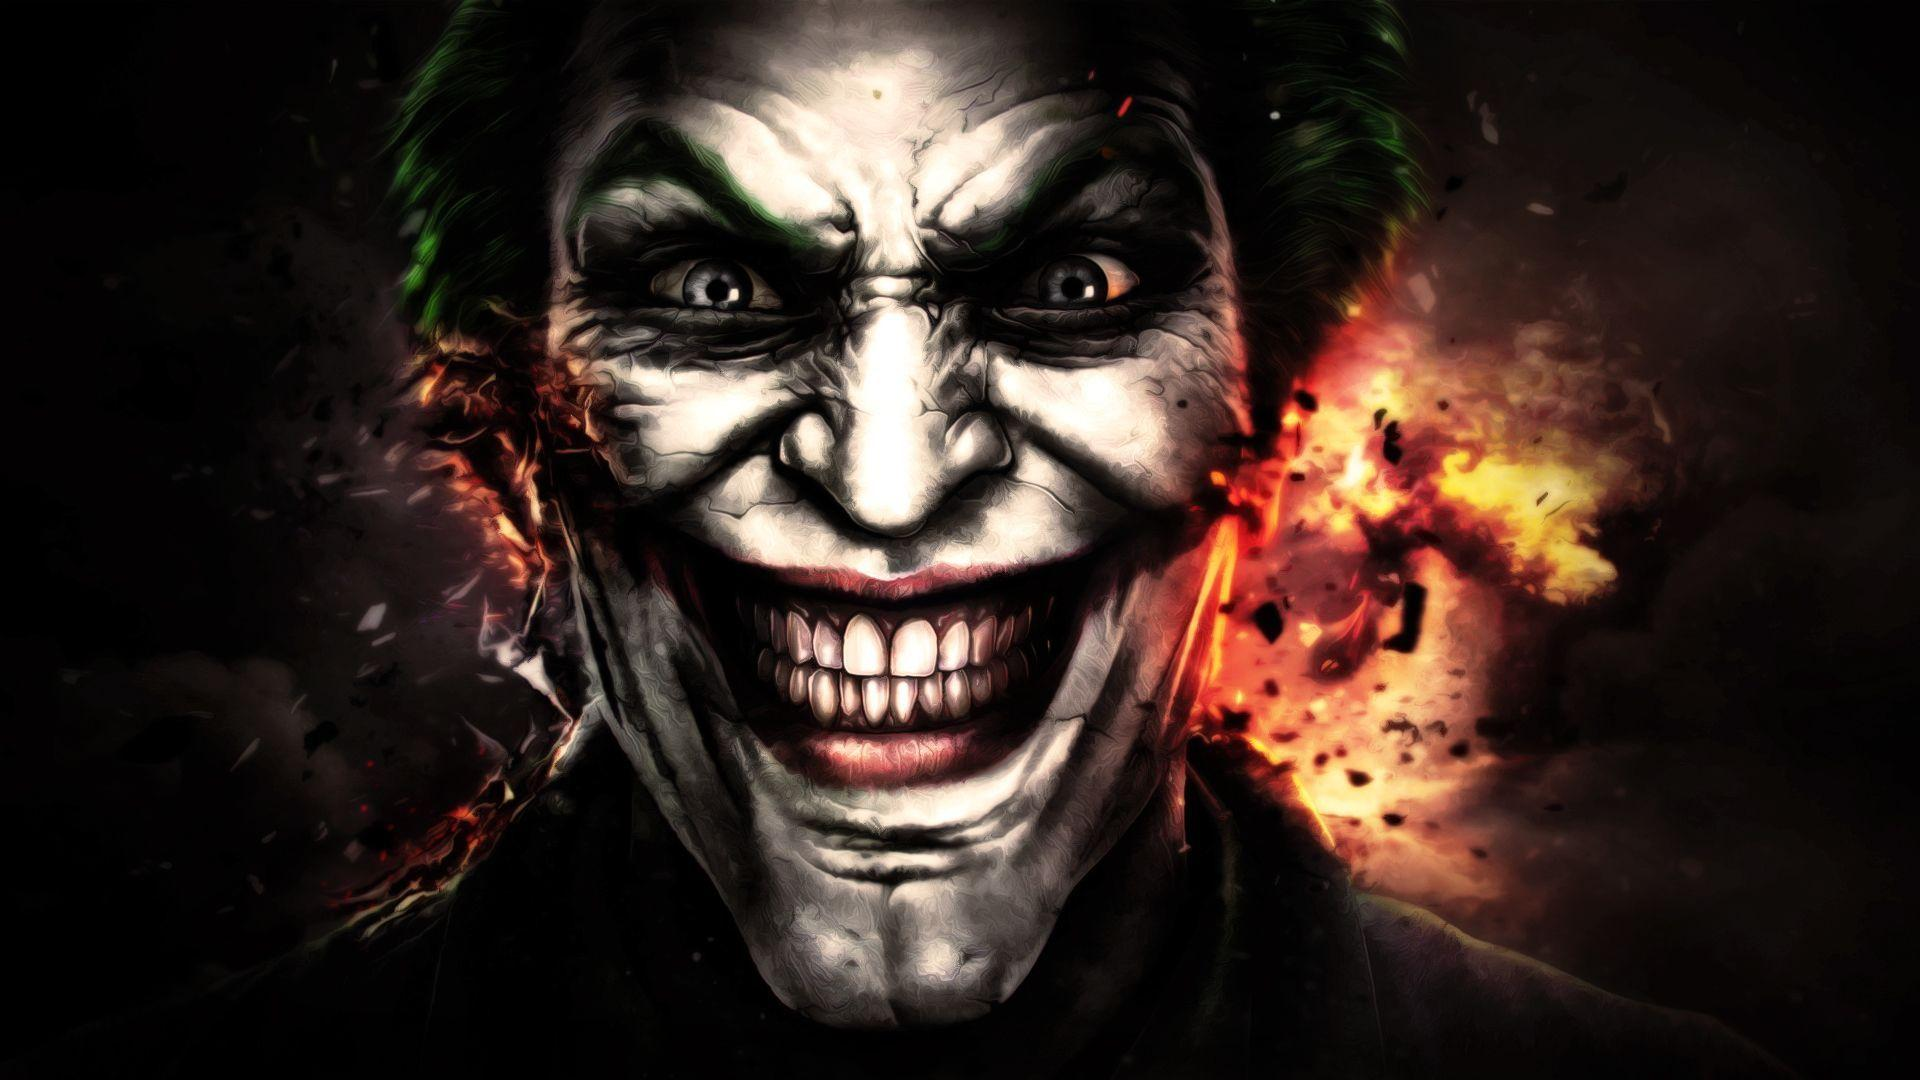 Wallpapers Movie Scary Face Joker